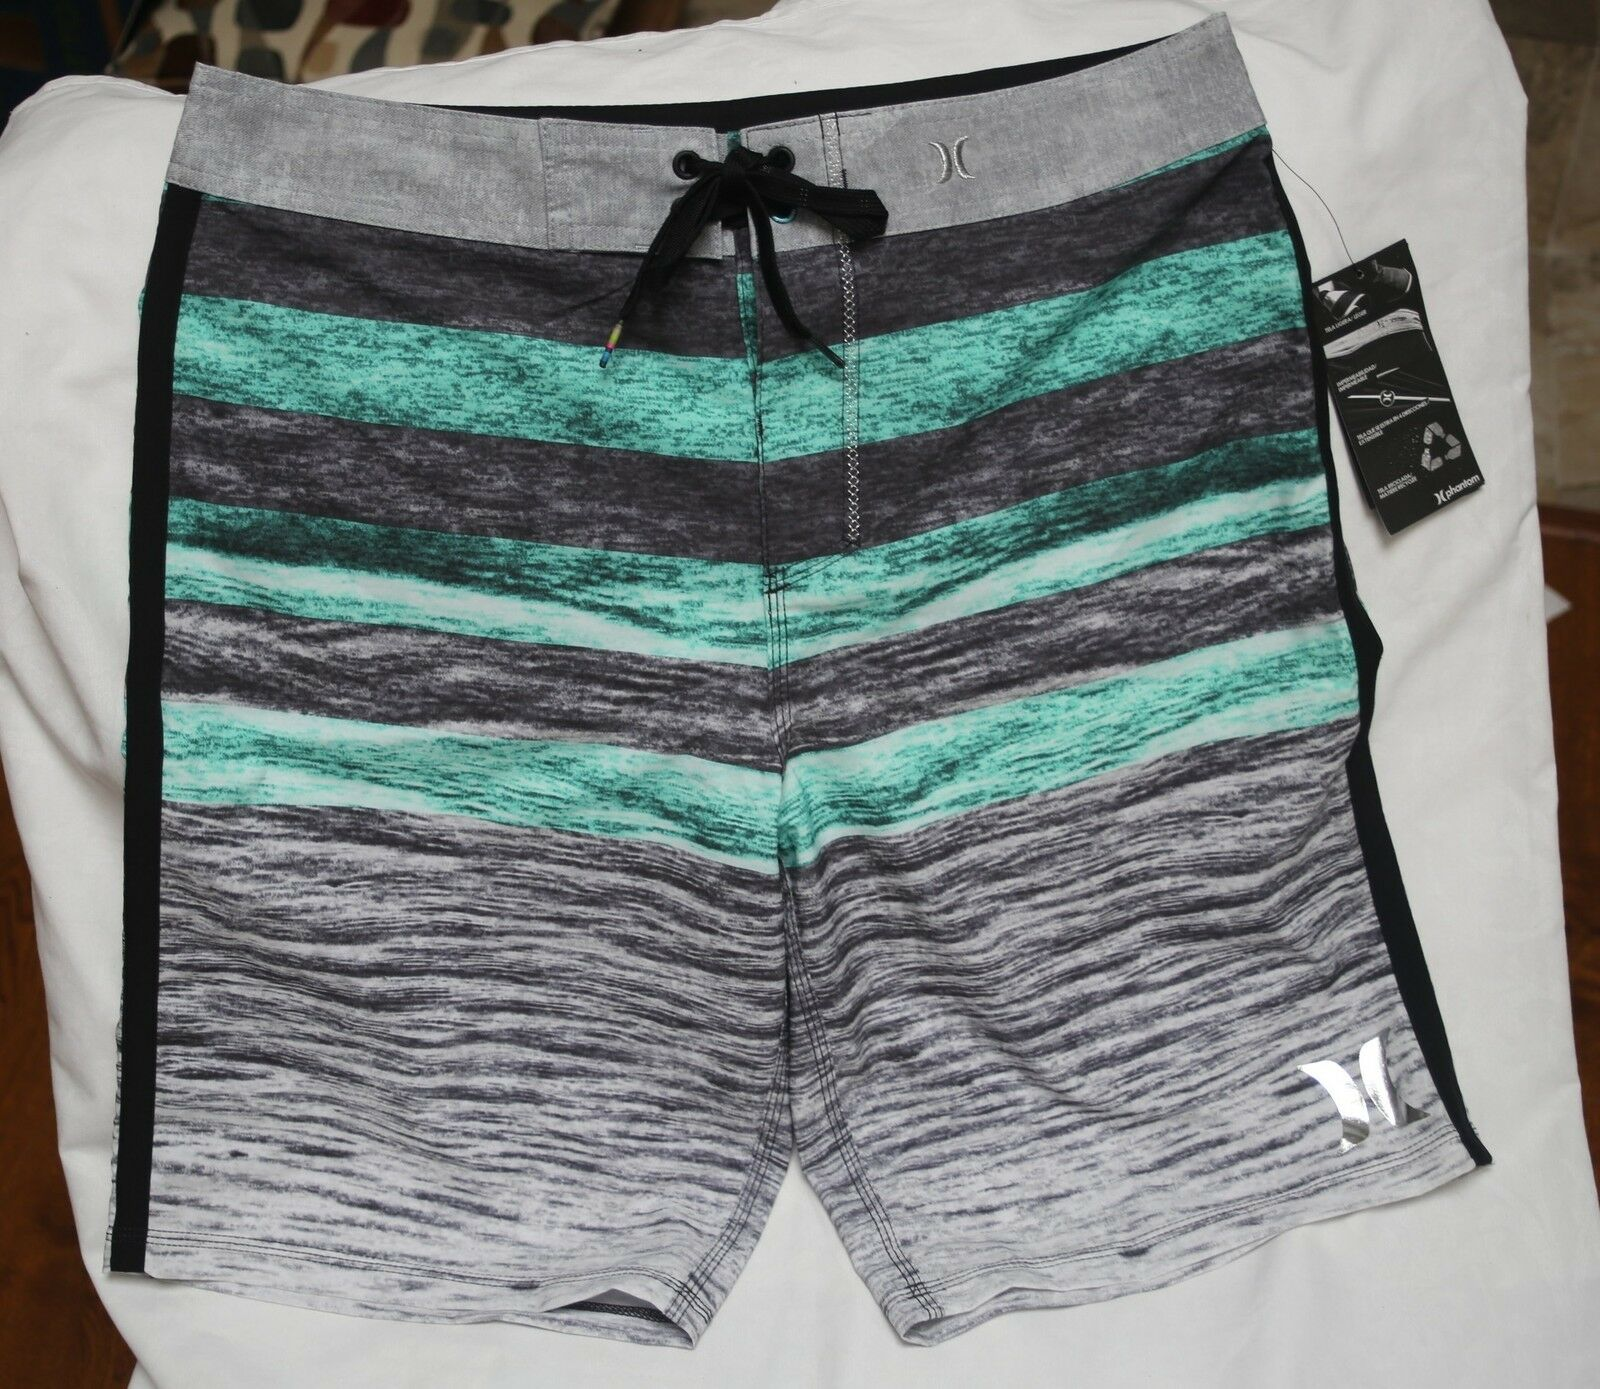 NEW HurleyP30 Ripple green board shorts size 31